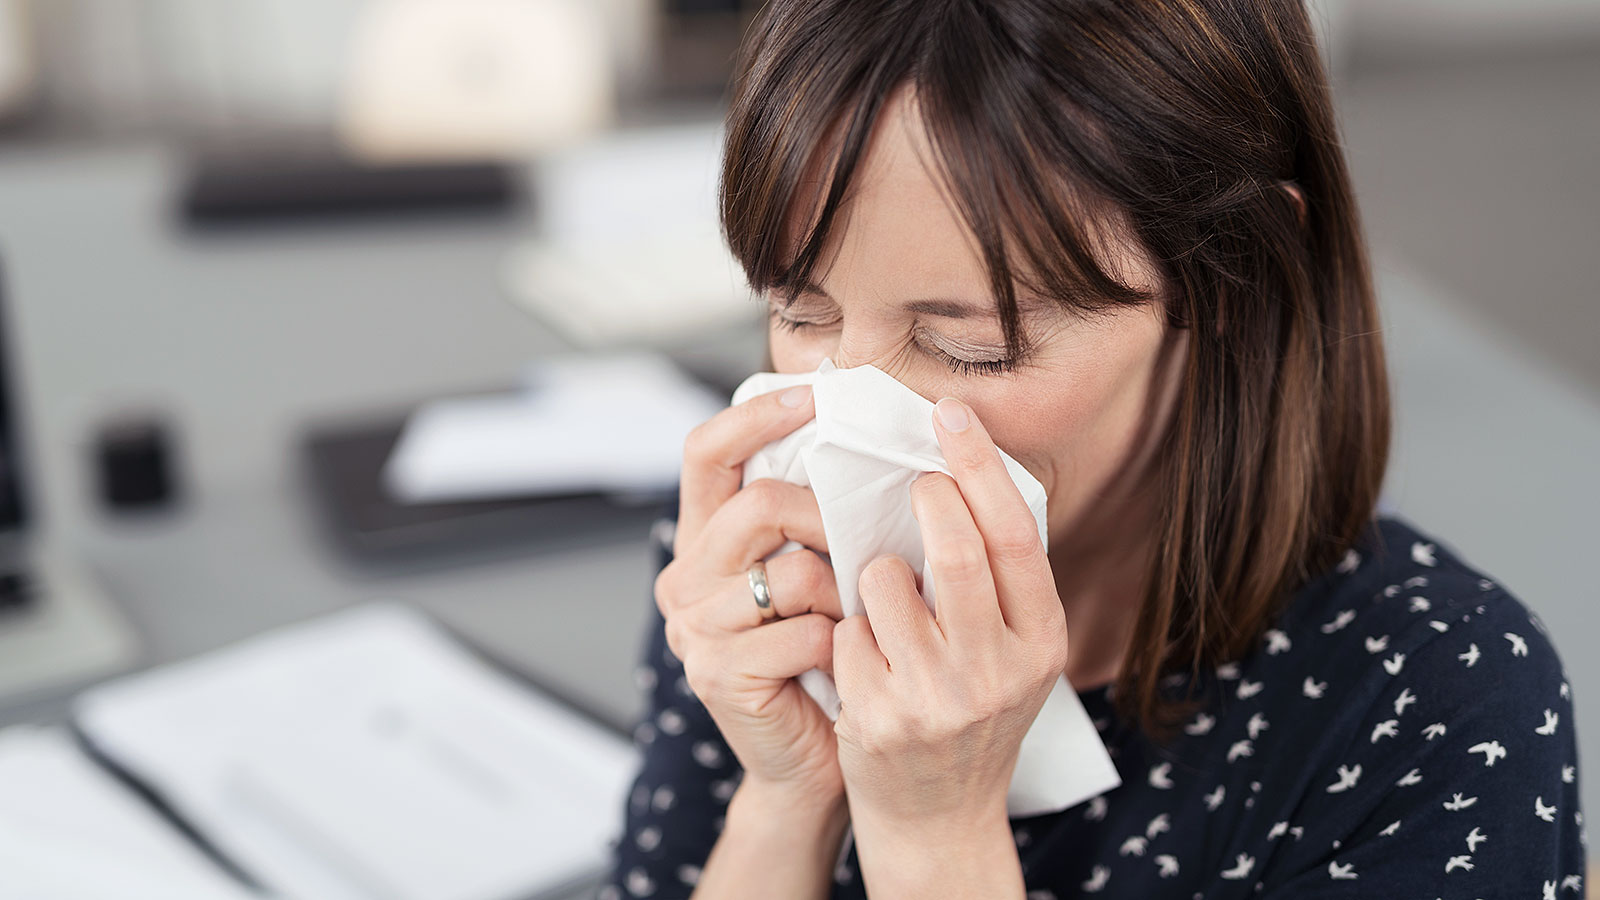 New research finds if the job market is strong, more workers get the flu